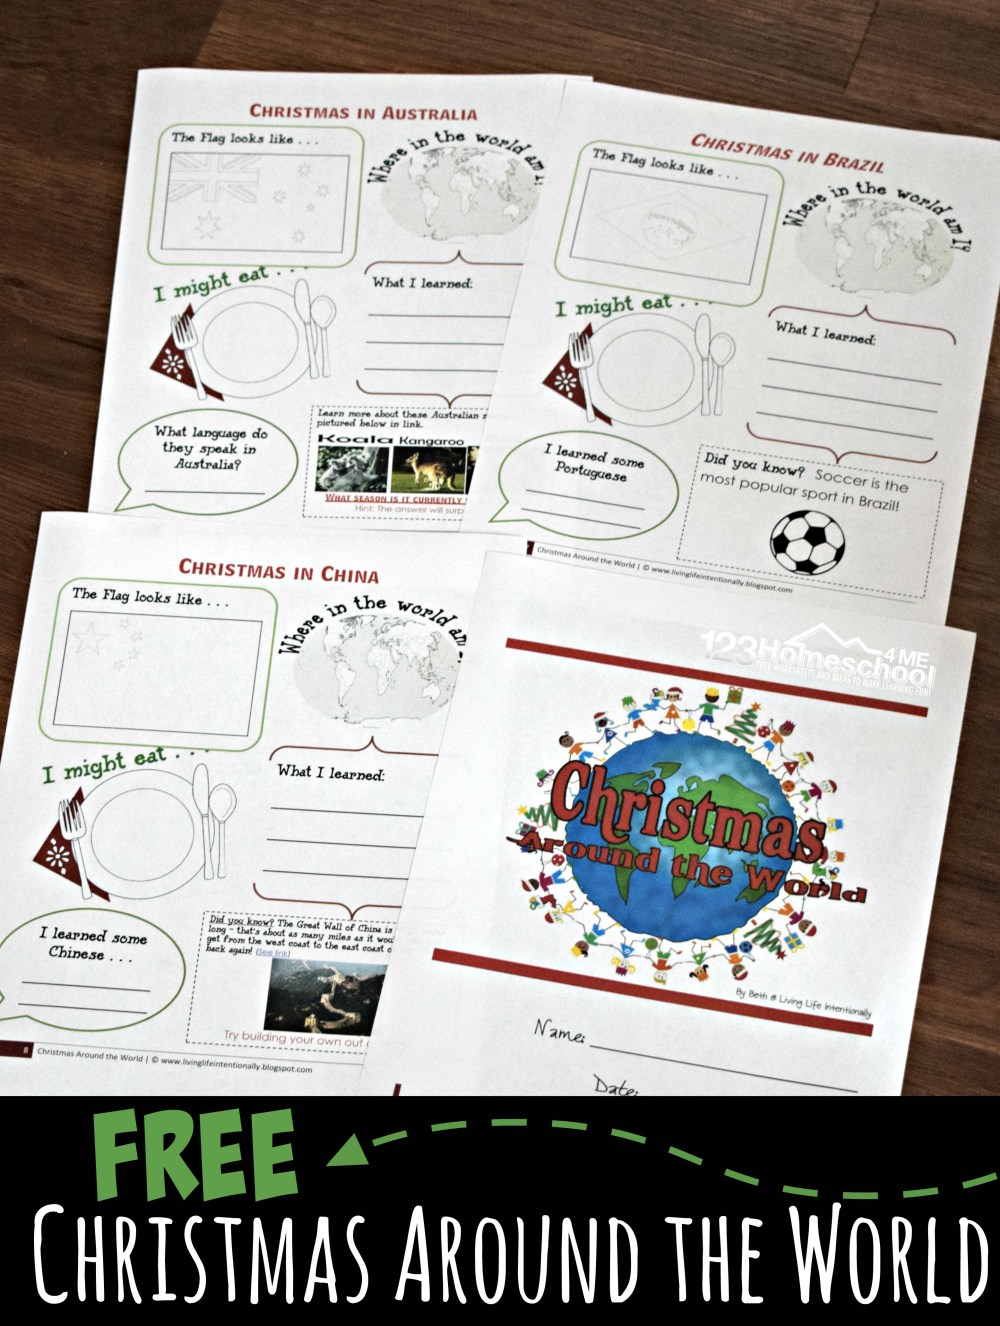 medium resolution of FREE Christmas Around the World Worksheets for Kids + Activities